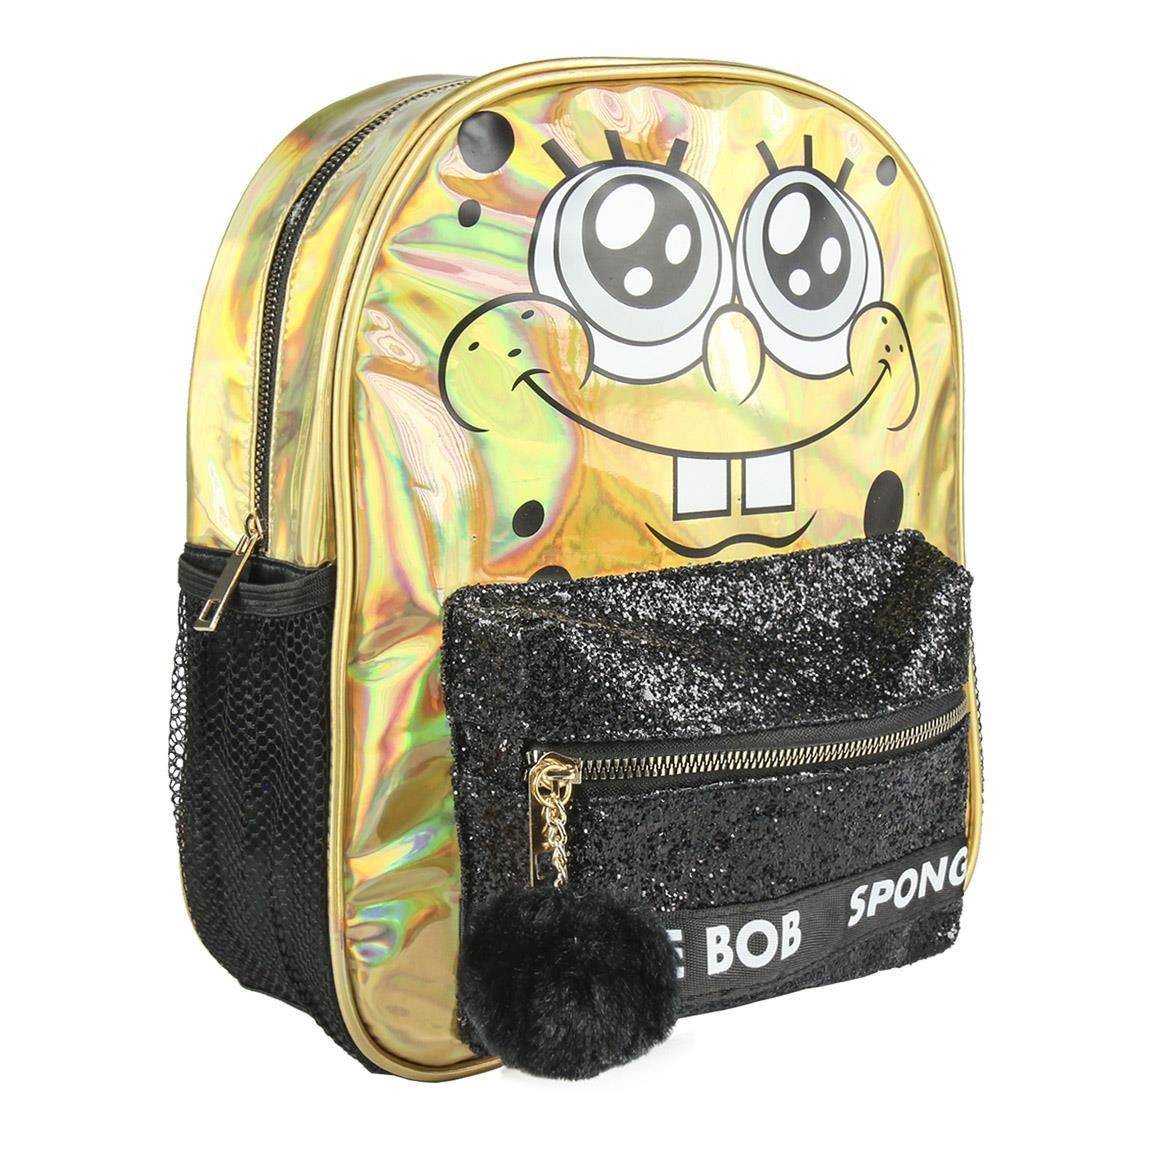 SpongeBob SquarePants Casual Fashion Backpack Bob 25 x 30 x 10 cm